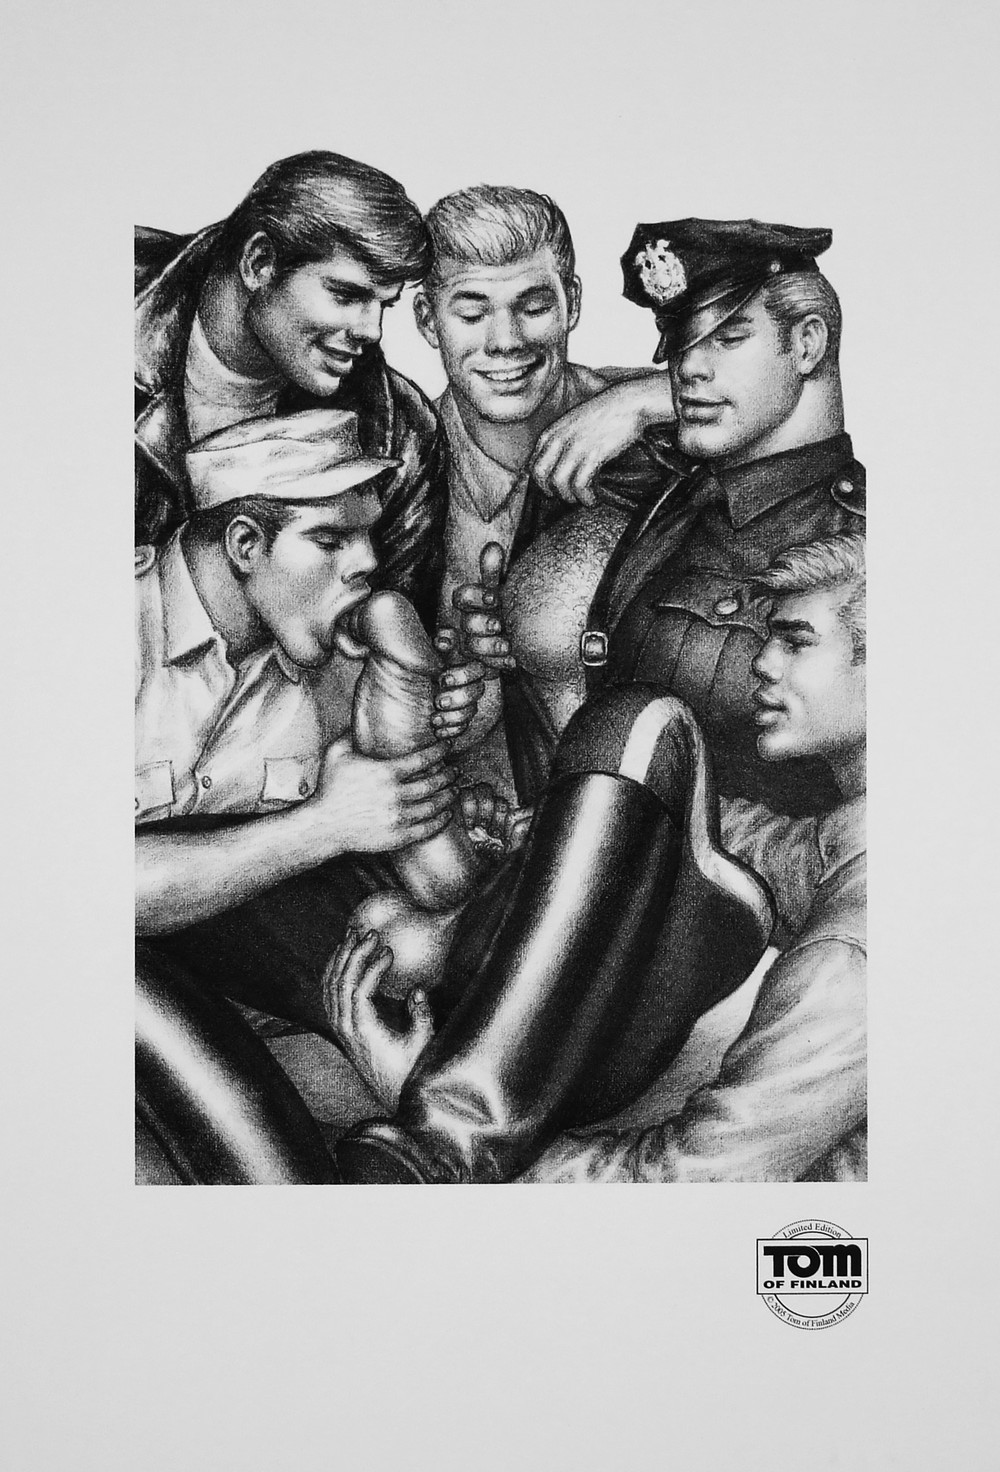 Tom of Finland - UNTITLED DICK LICK